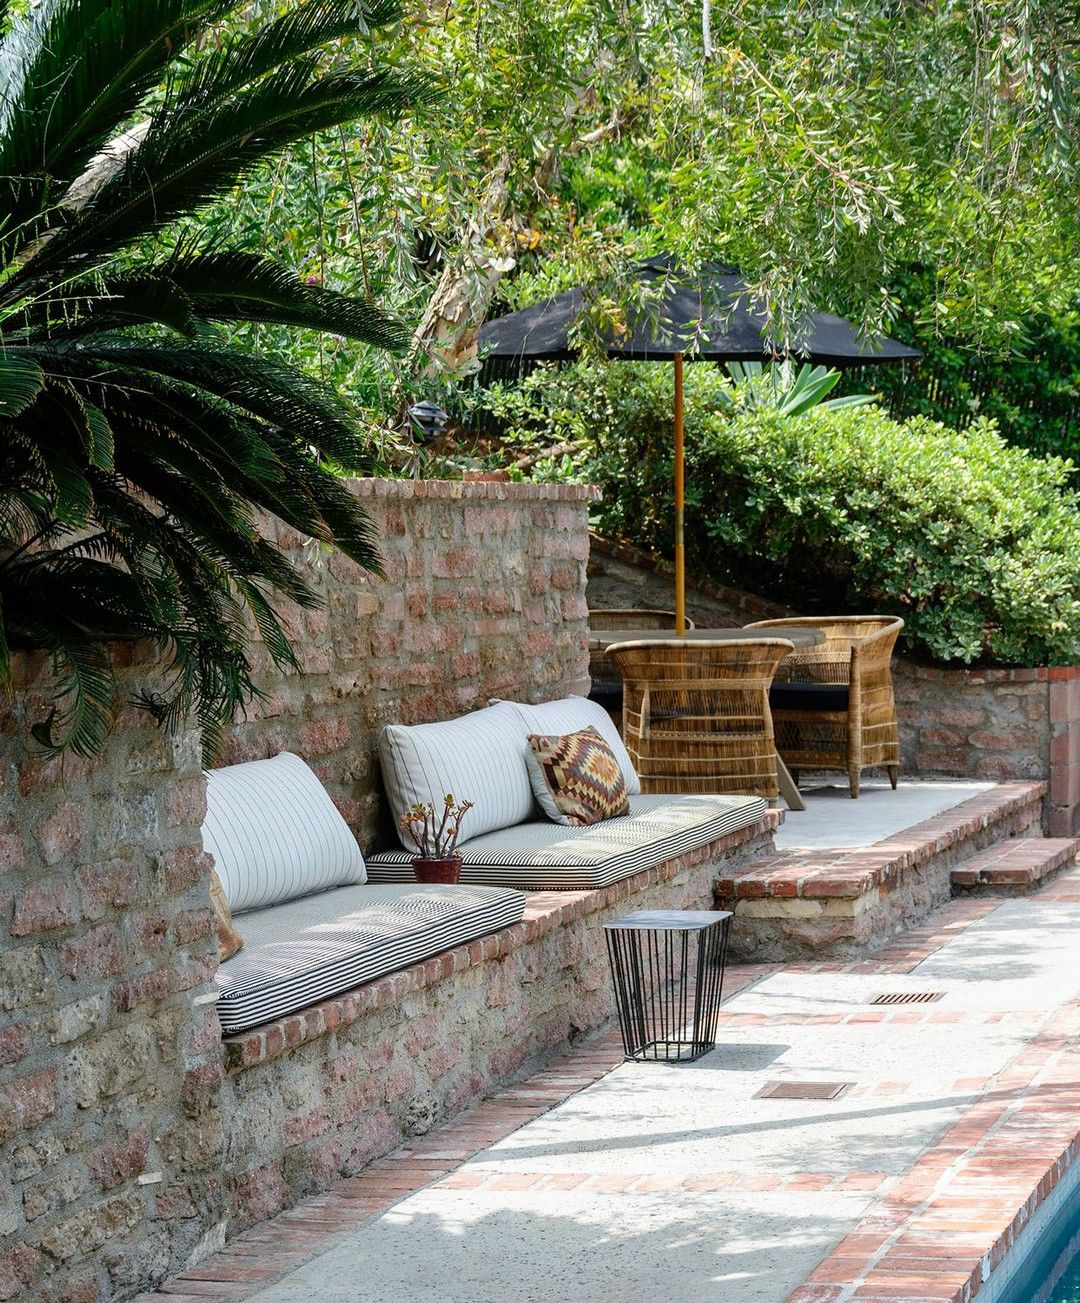 40+ Backyard Oasis Design That Make Your Garden More Wonderfull #backyardoasis